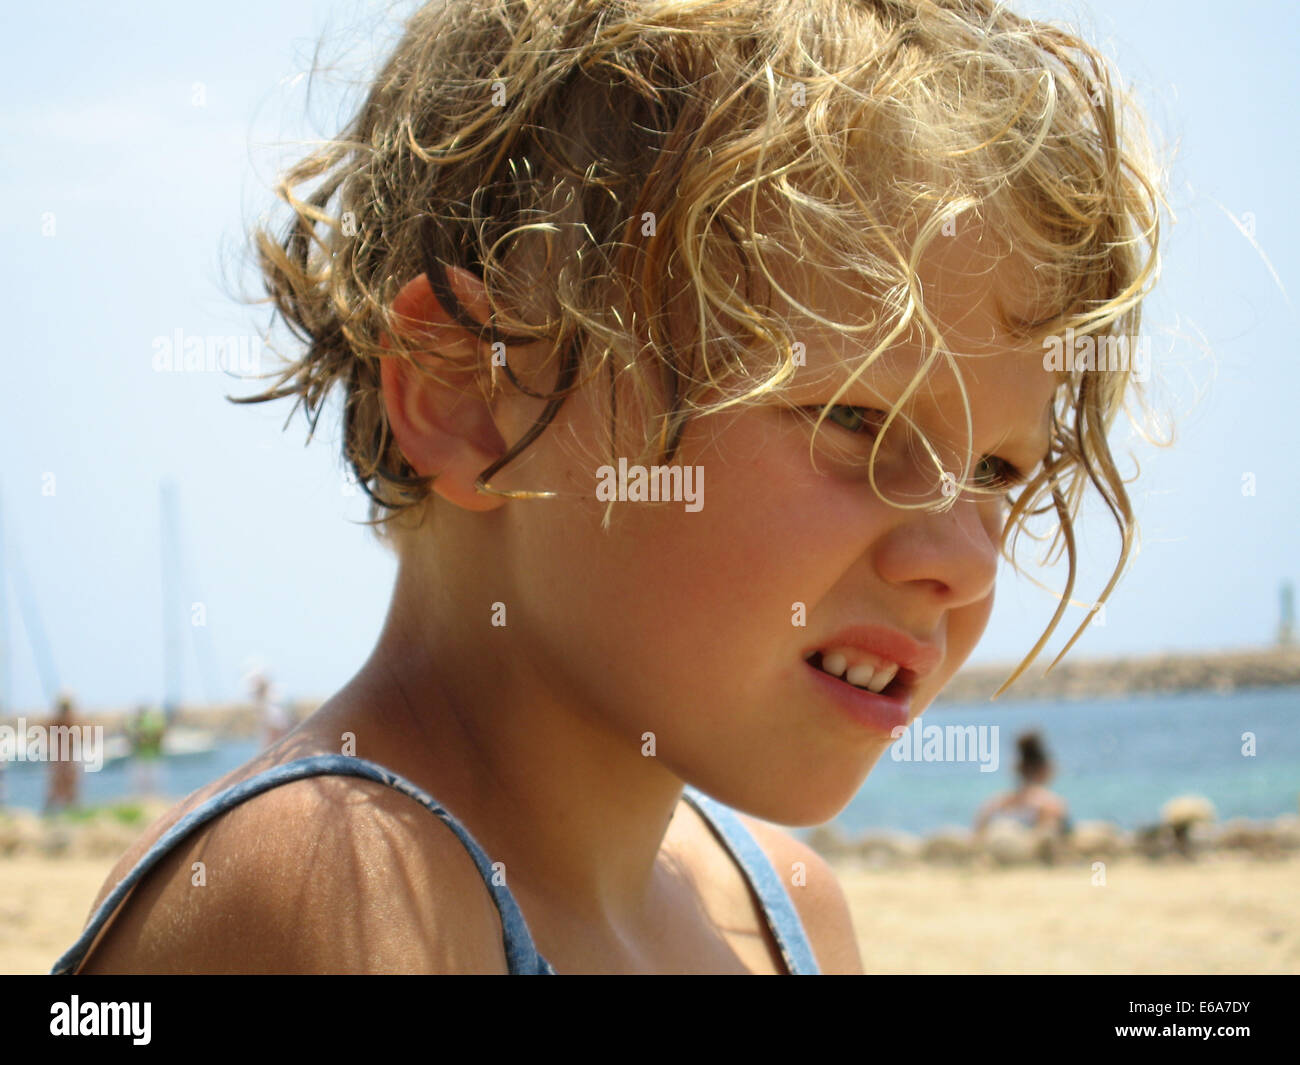 girl,beach,portrait - Stock Image